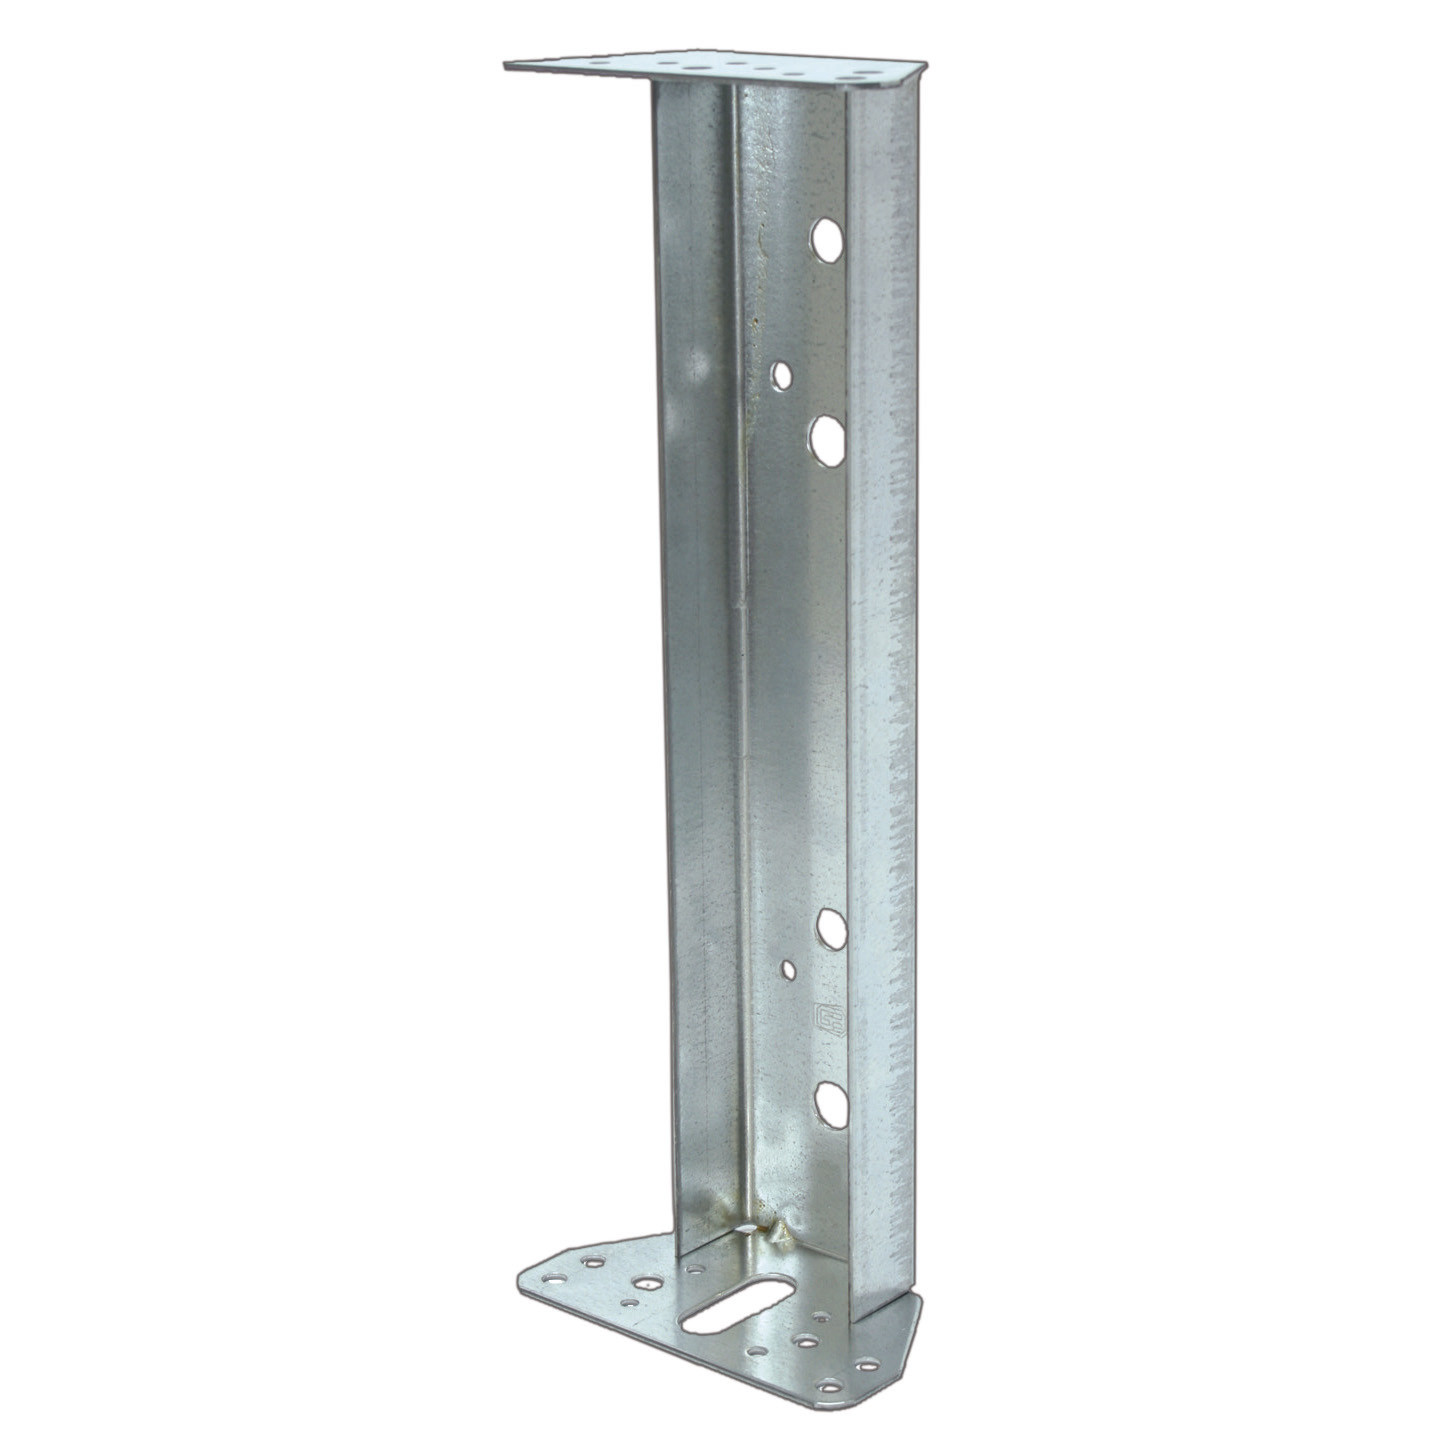 Window front frame support 60x70x280 115x2 304